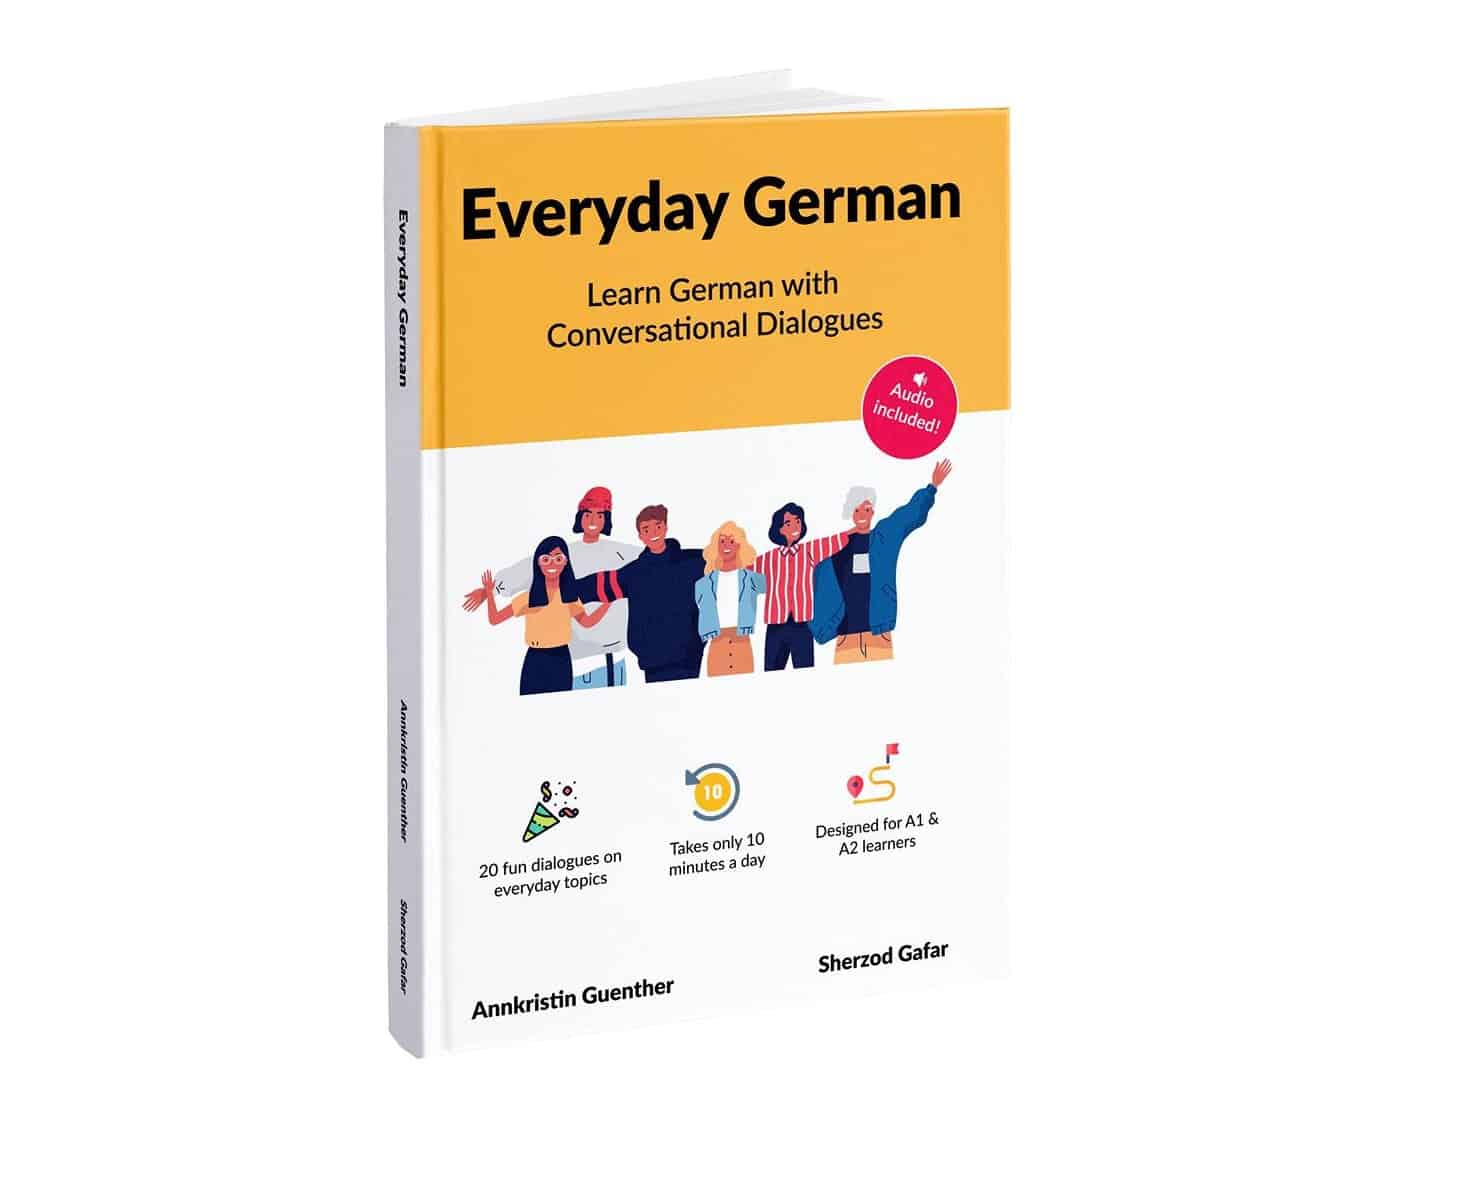 Everyday German - Book cover